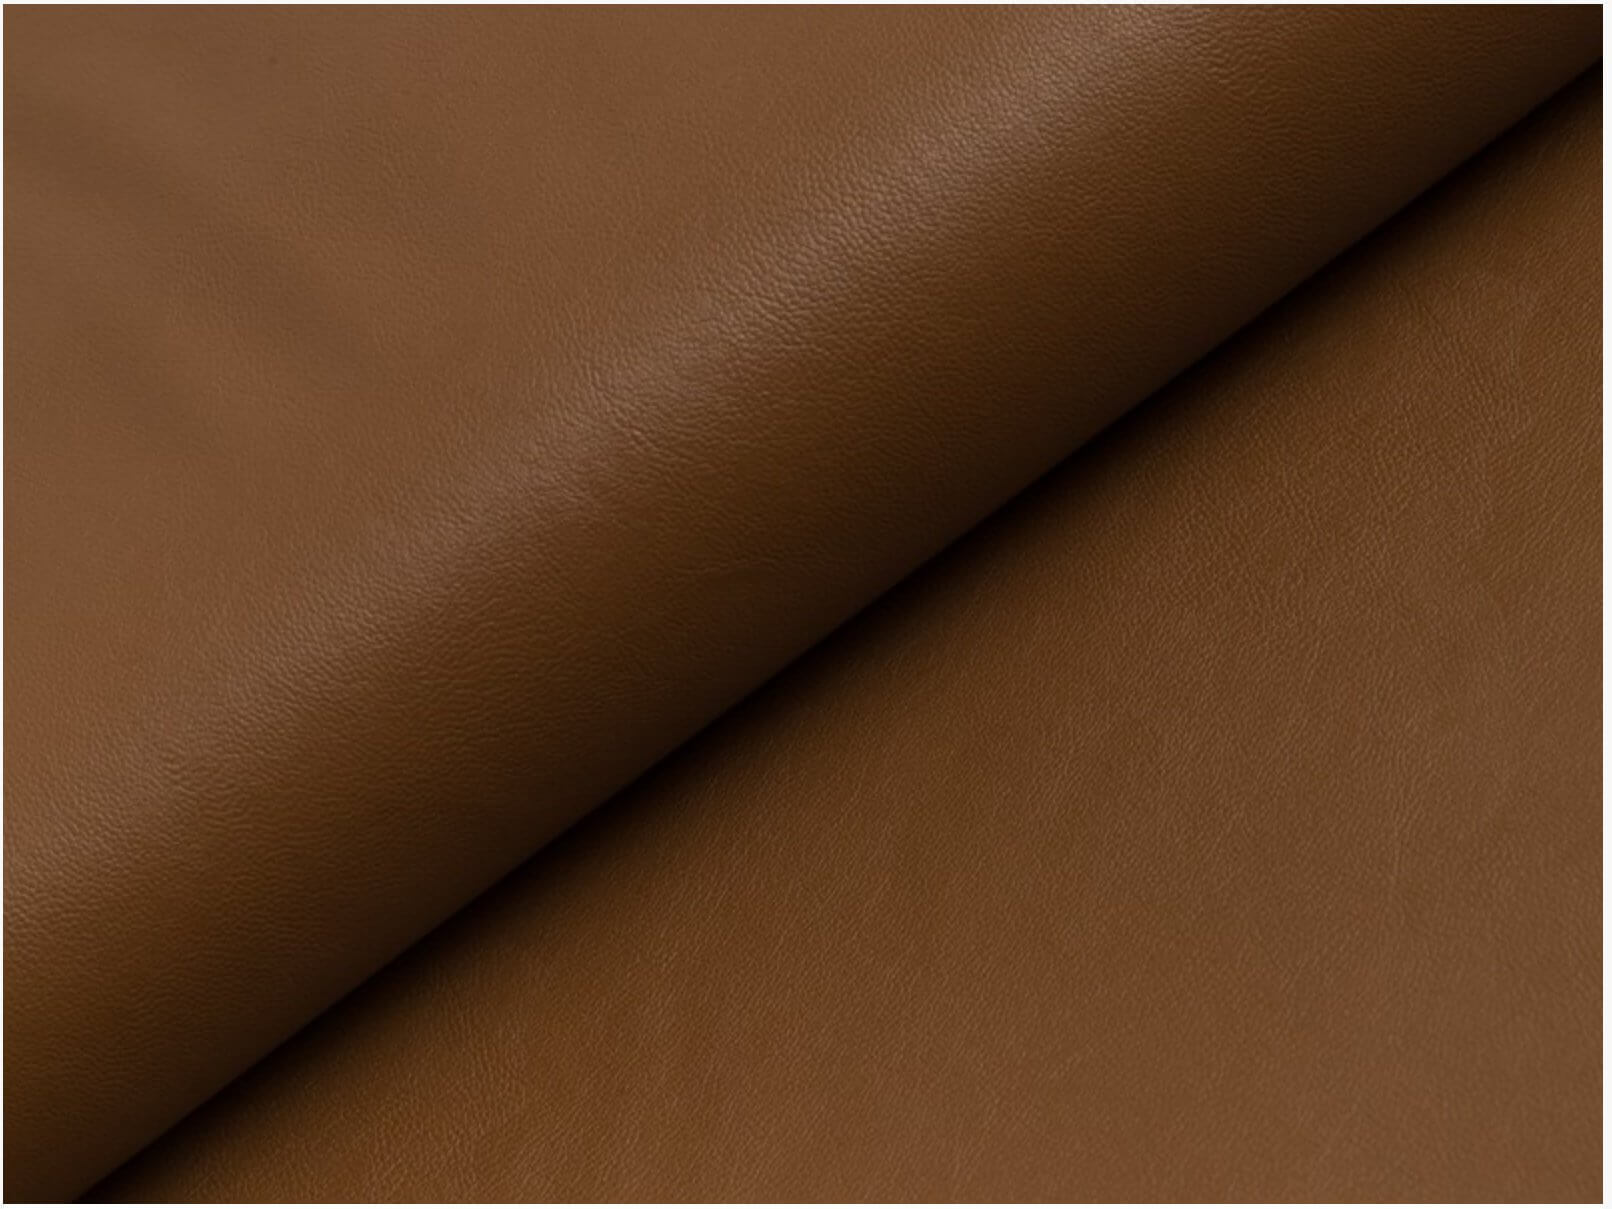 brown-cognac-soft-faux-leather-viscose-back-fabric-imitation-pu-leather-material-for-clothes-upholstery-decor-145cm-wide-5b8f01281.jpg